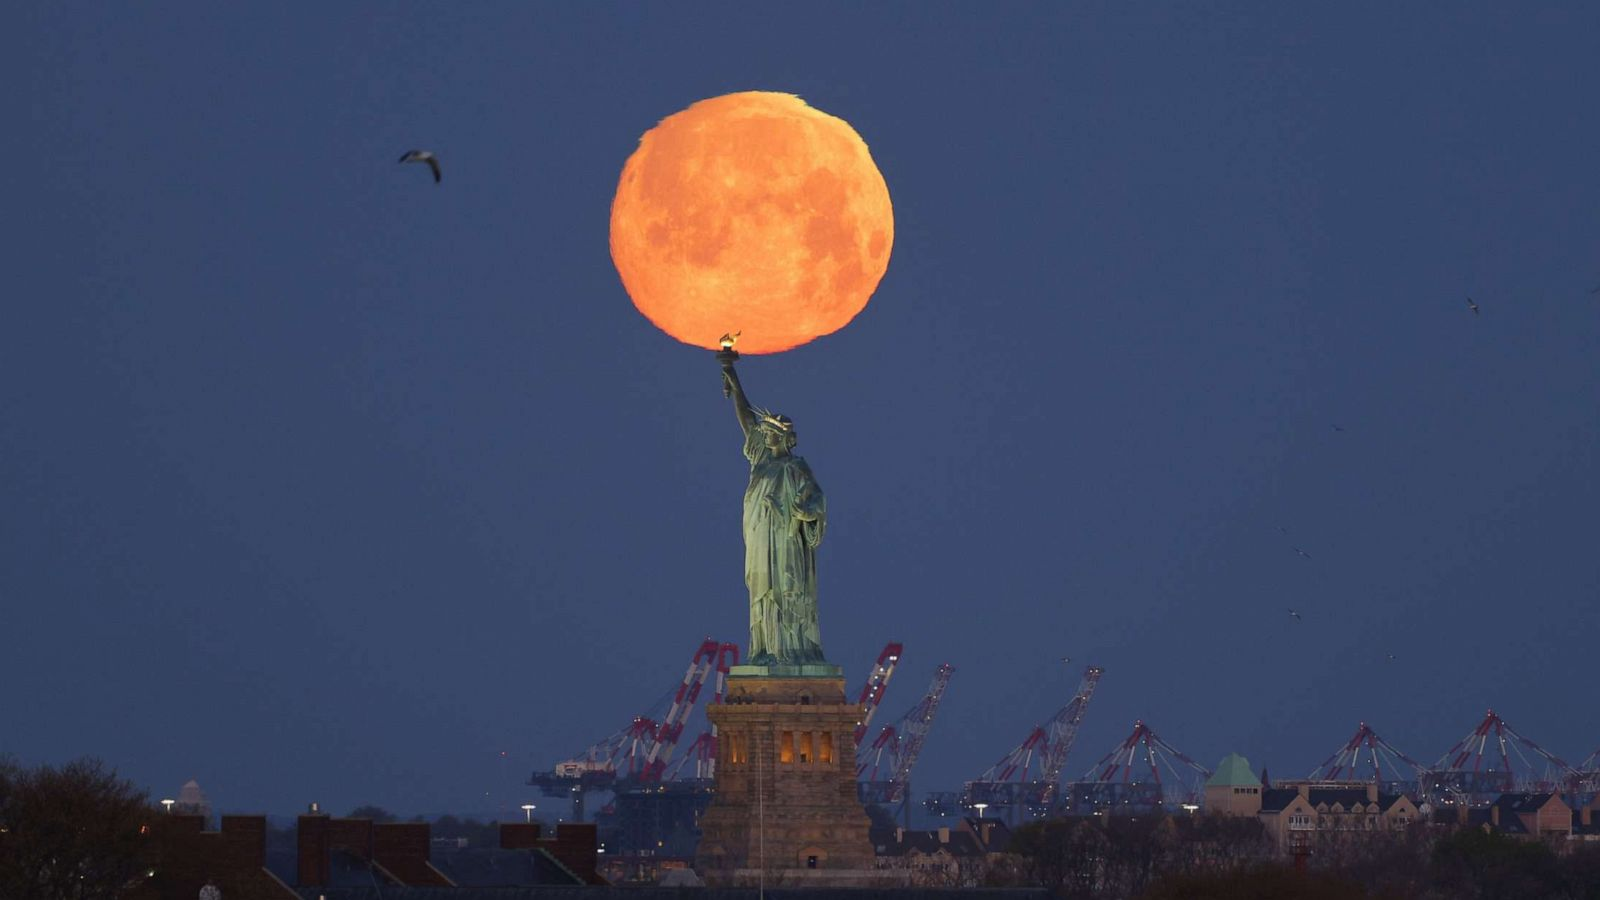 Pink moon is 1st supermoon of 2021: When to see it - ABC News